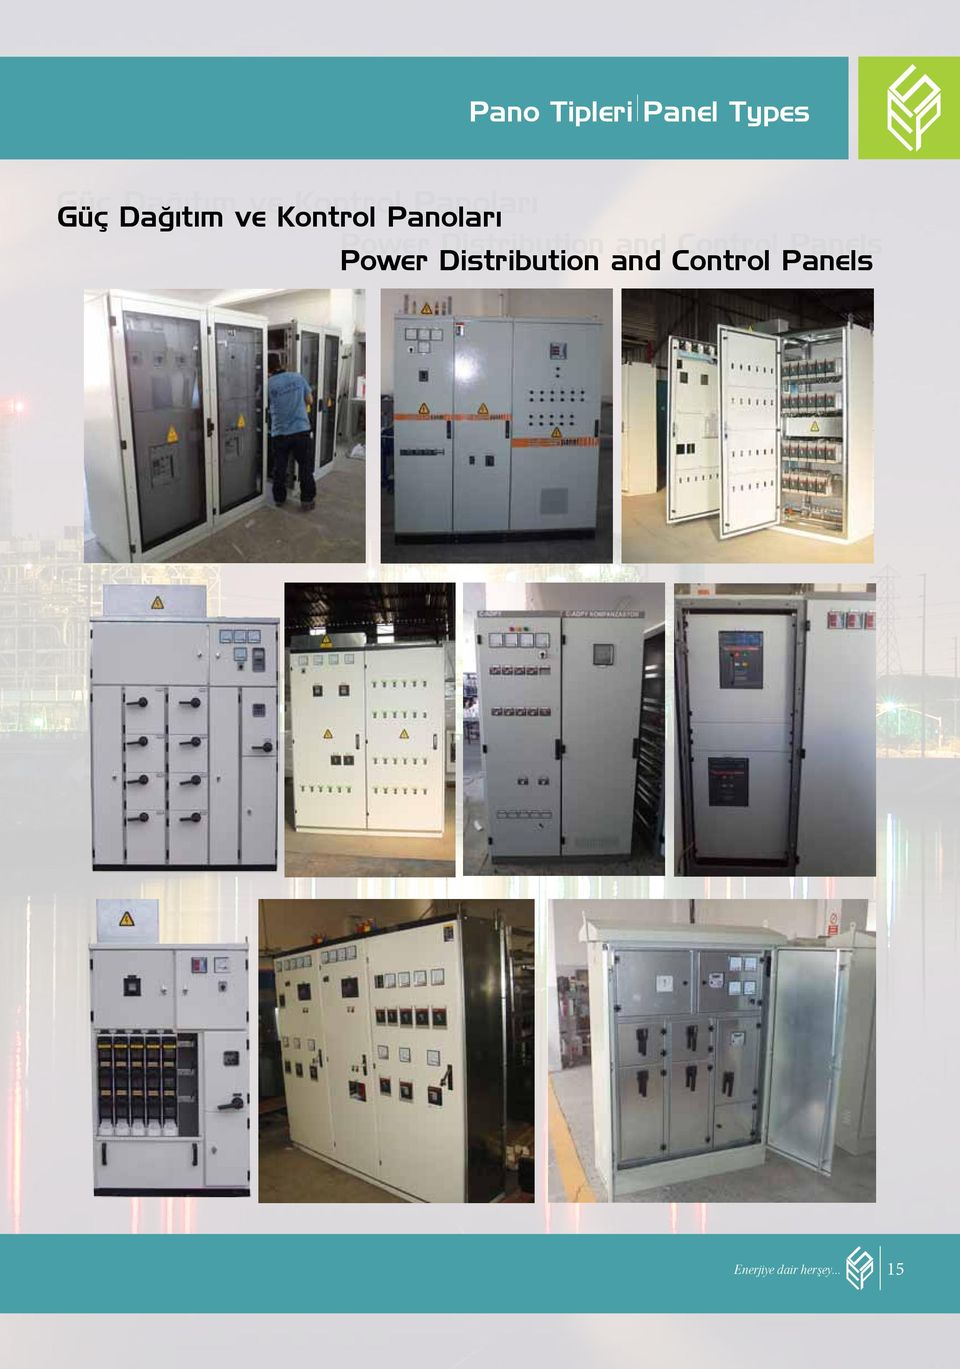 Distribution and Control Panels Power